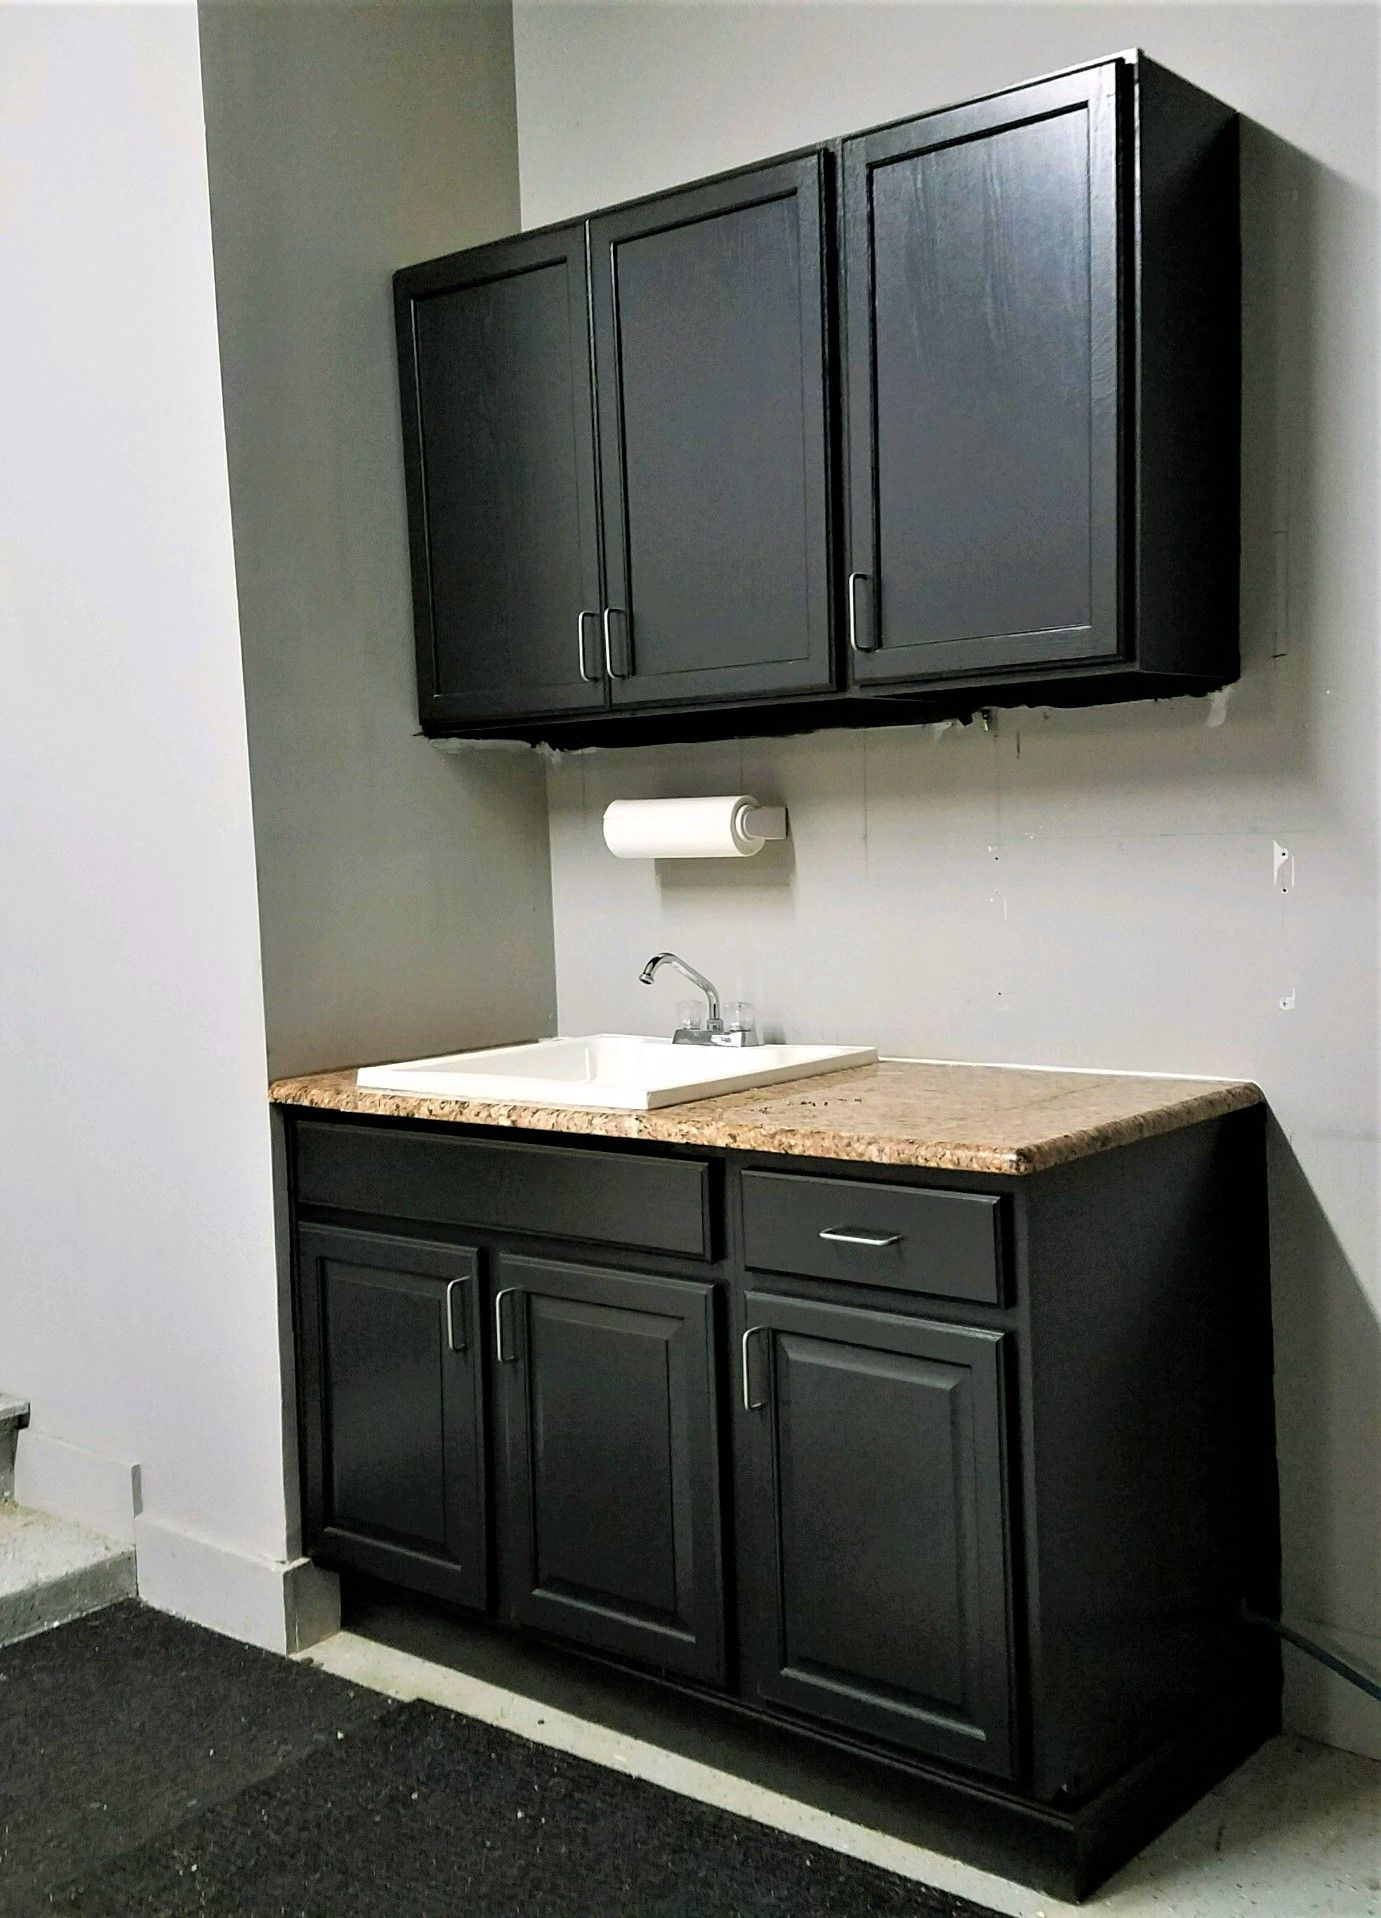 how to install or hang upper wall cabinets wall cabinet on wall cabinets id=73178